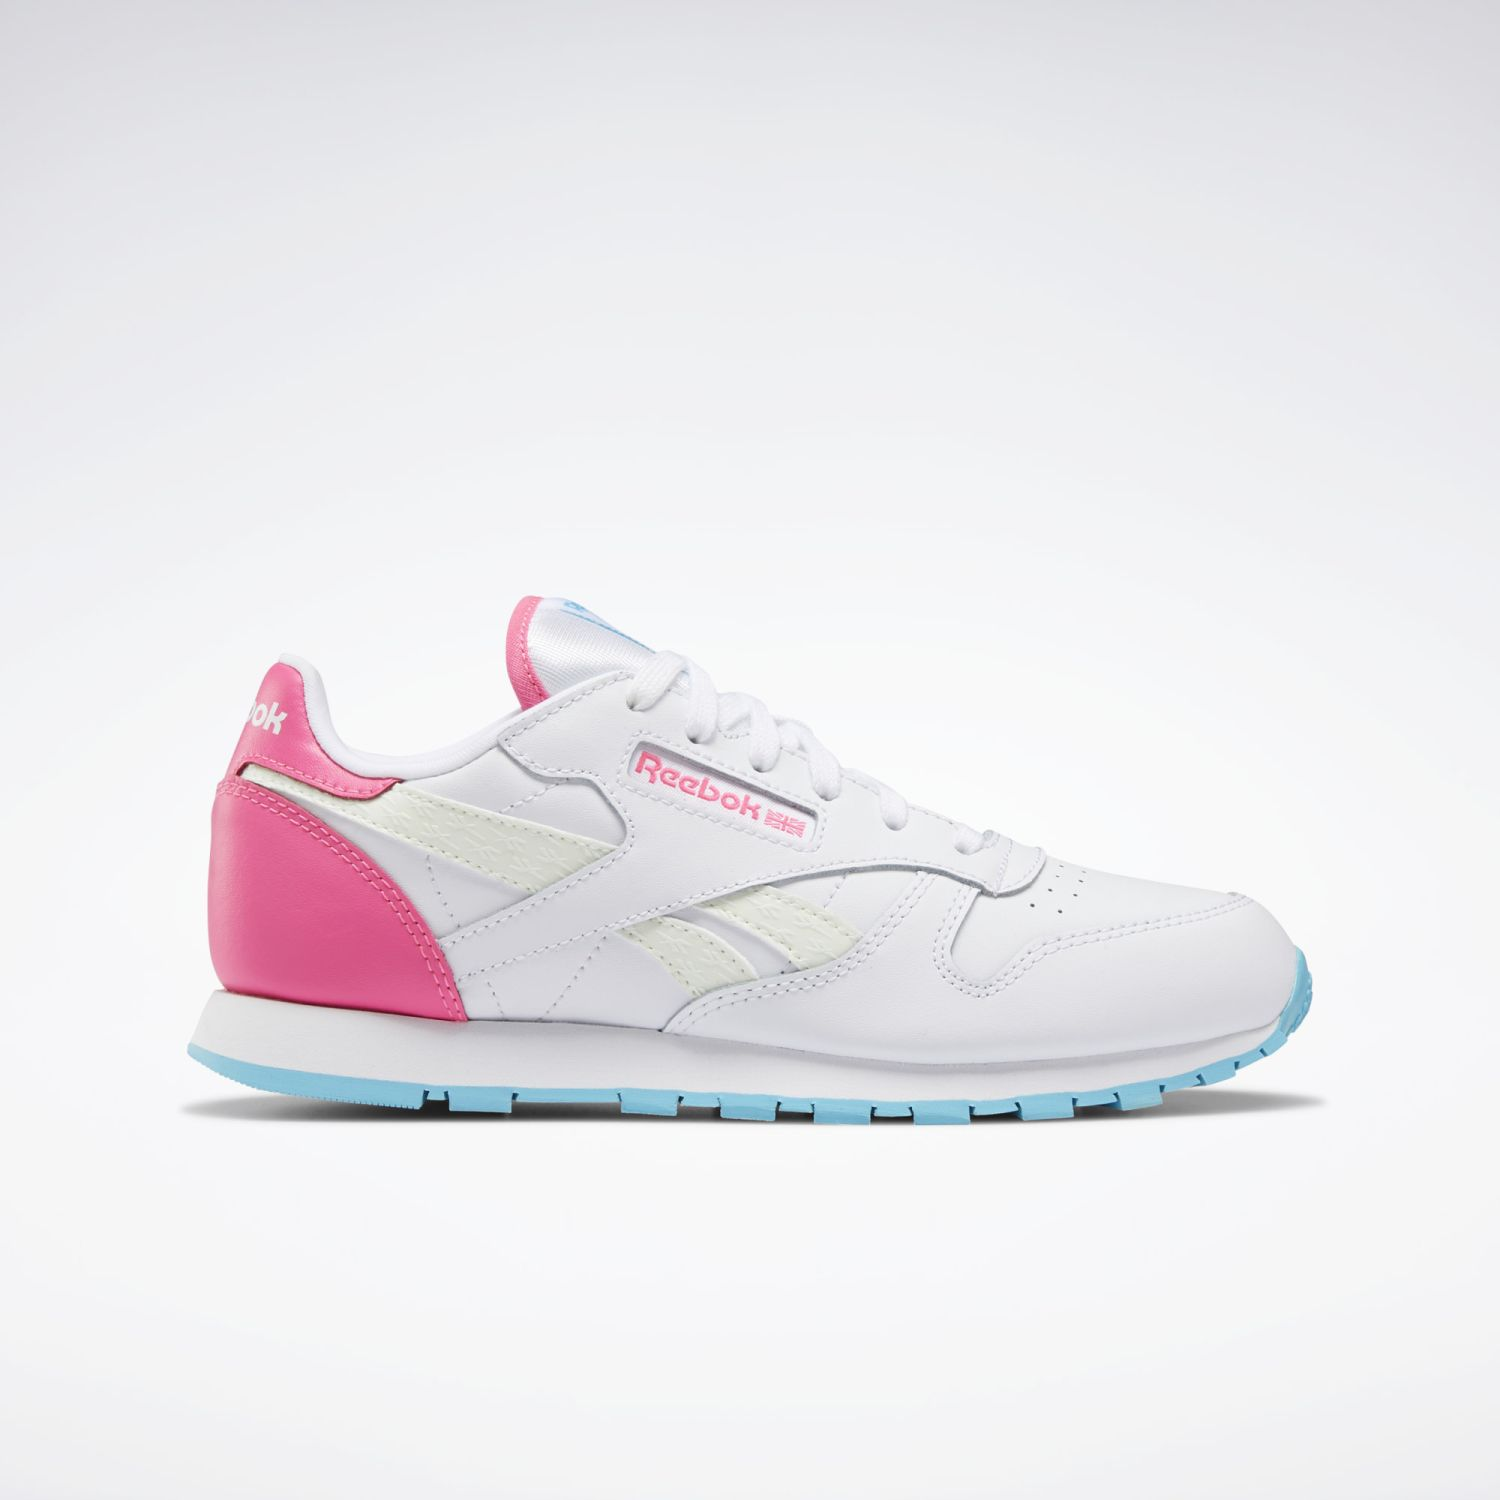 Adidas CLASSIC LEATHER Blanco / fucsia Walking